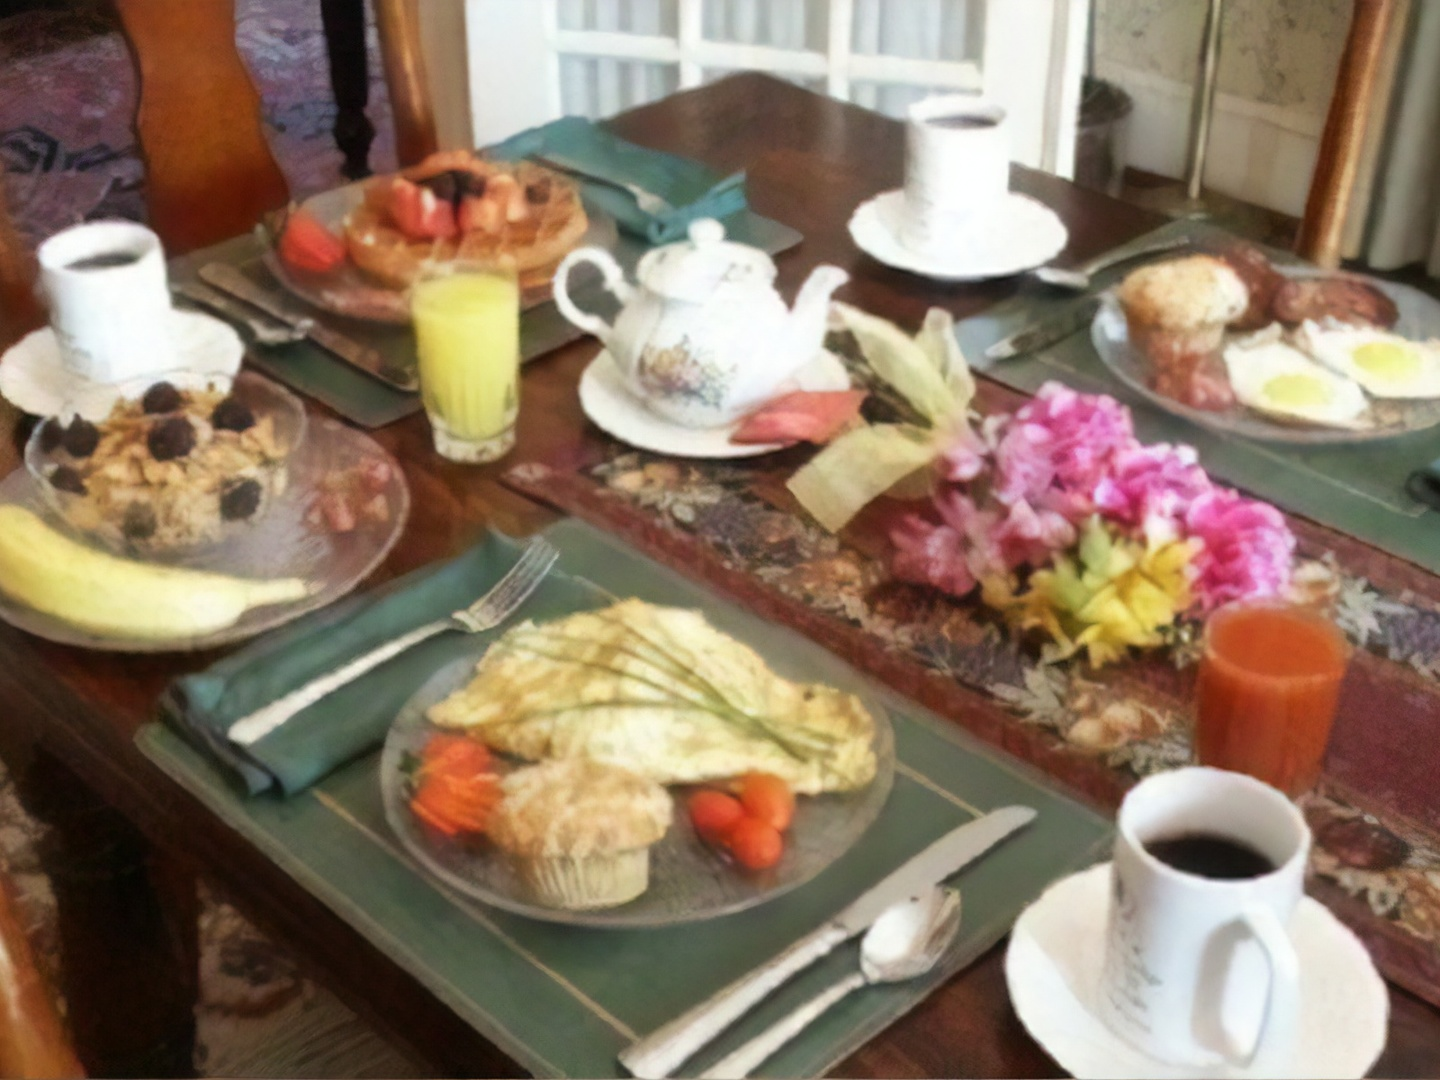 A plate of food and a cup of coffee on a table at A B&B at Llewellyn Lodge.